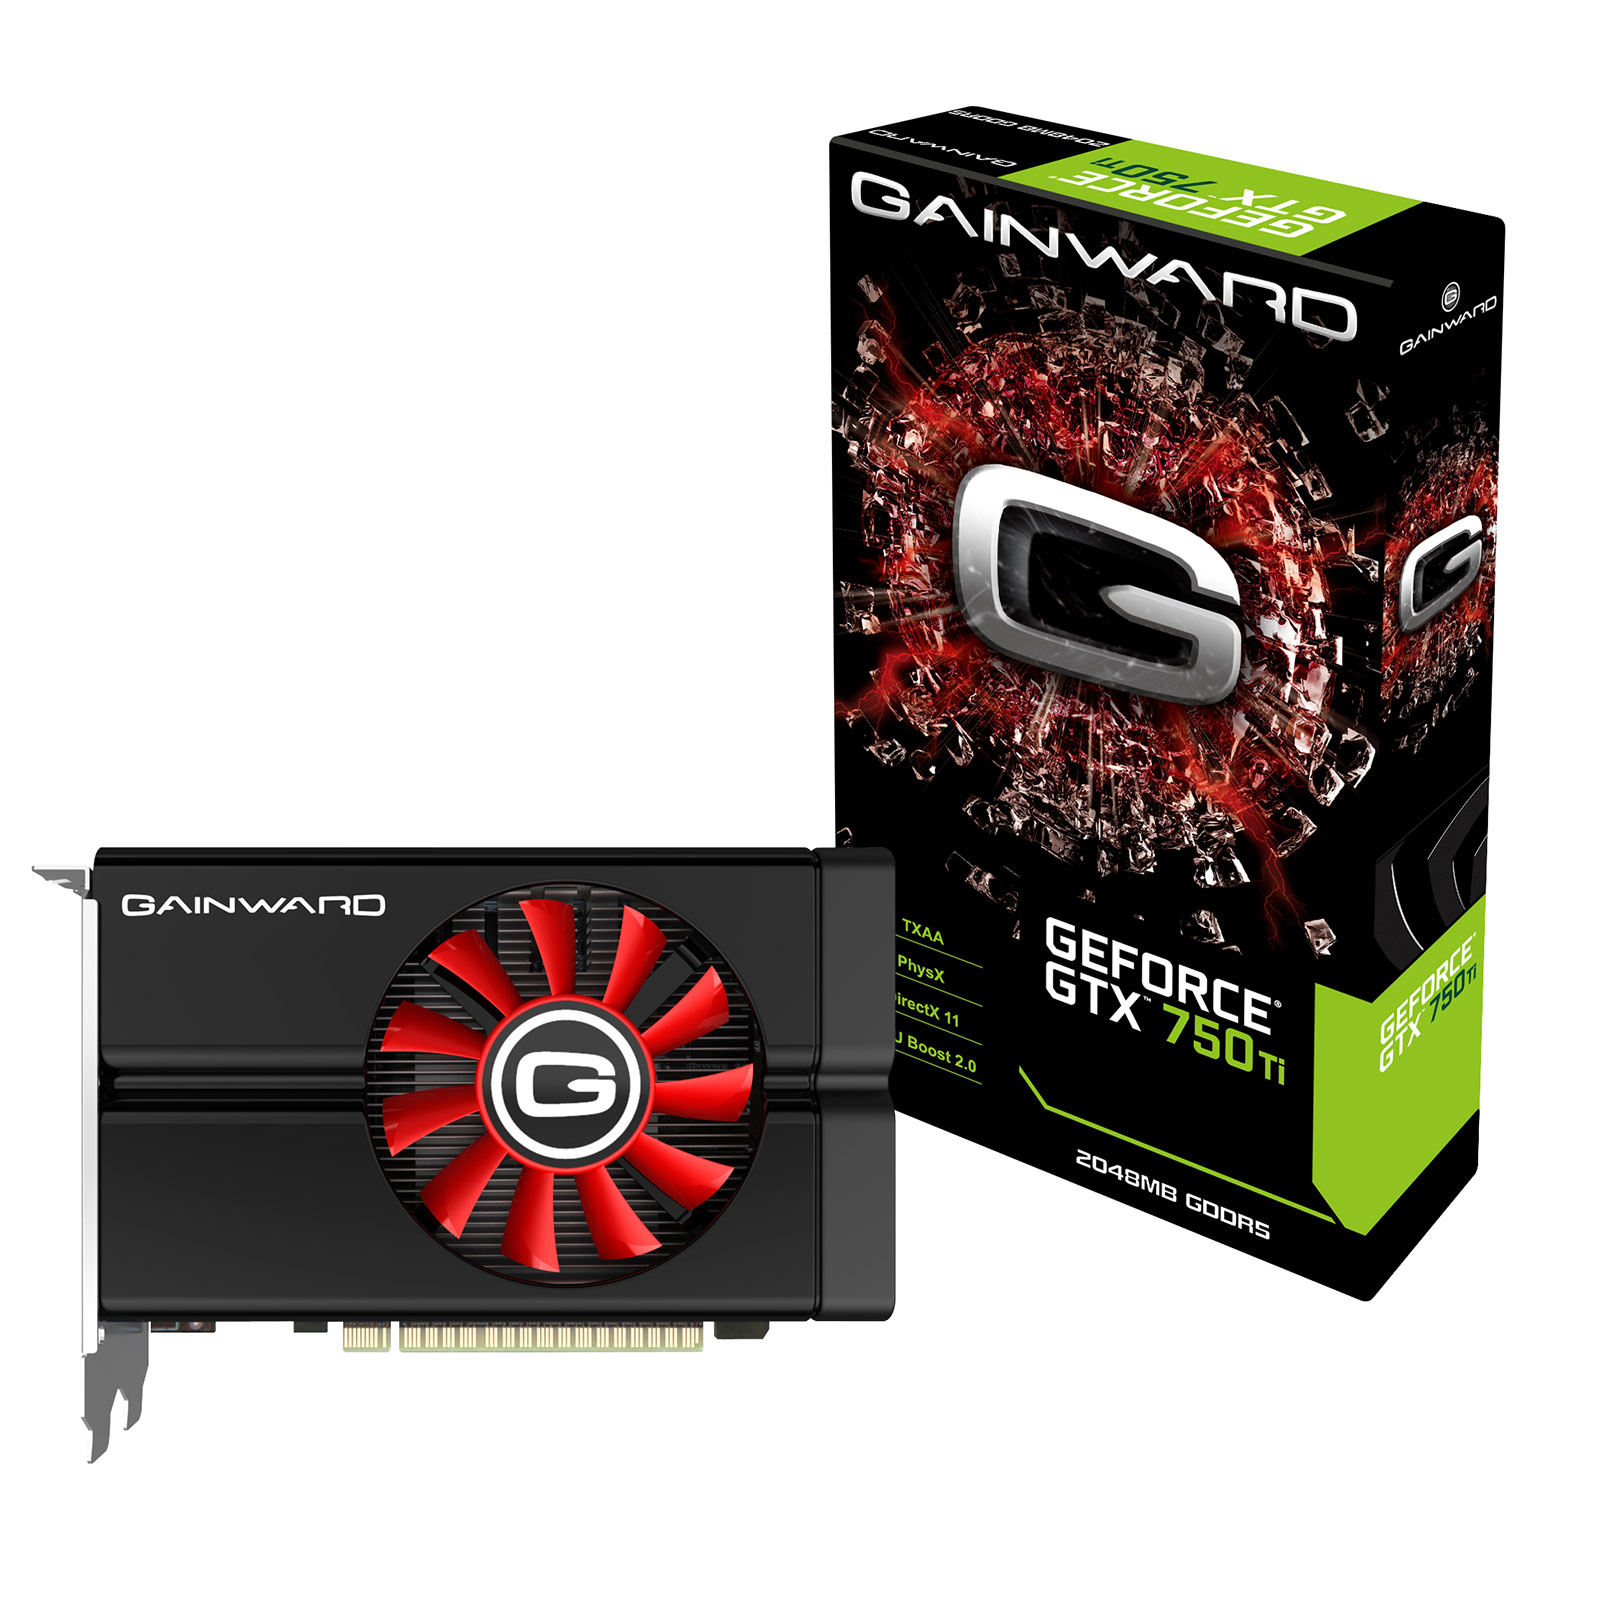 Carte graphique Gainward GeForce GTX 750 Ti 2GB 2048 Mo Dual DVI/Mini-HDMI - PCI Express (NVIDIA GeForce avec CUDA GTX 750 Ti)